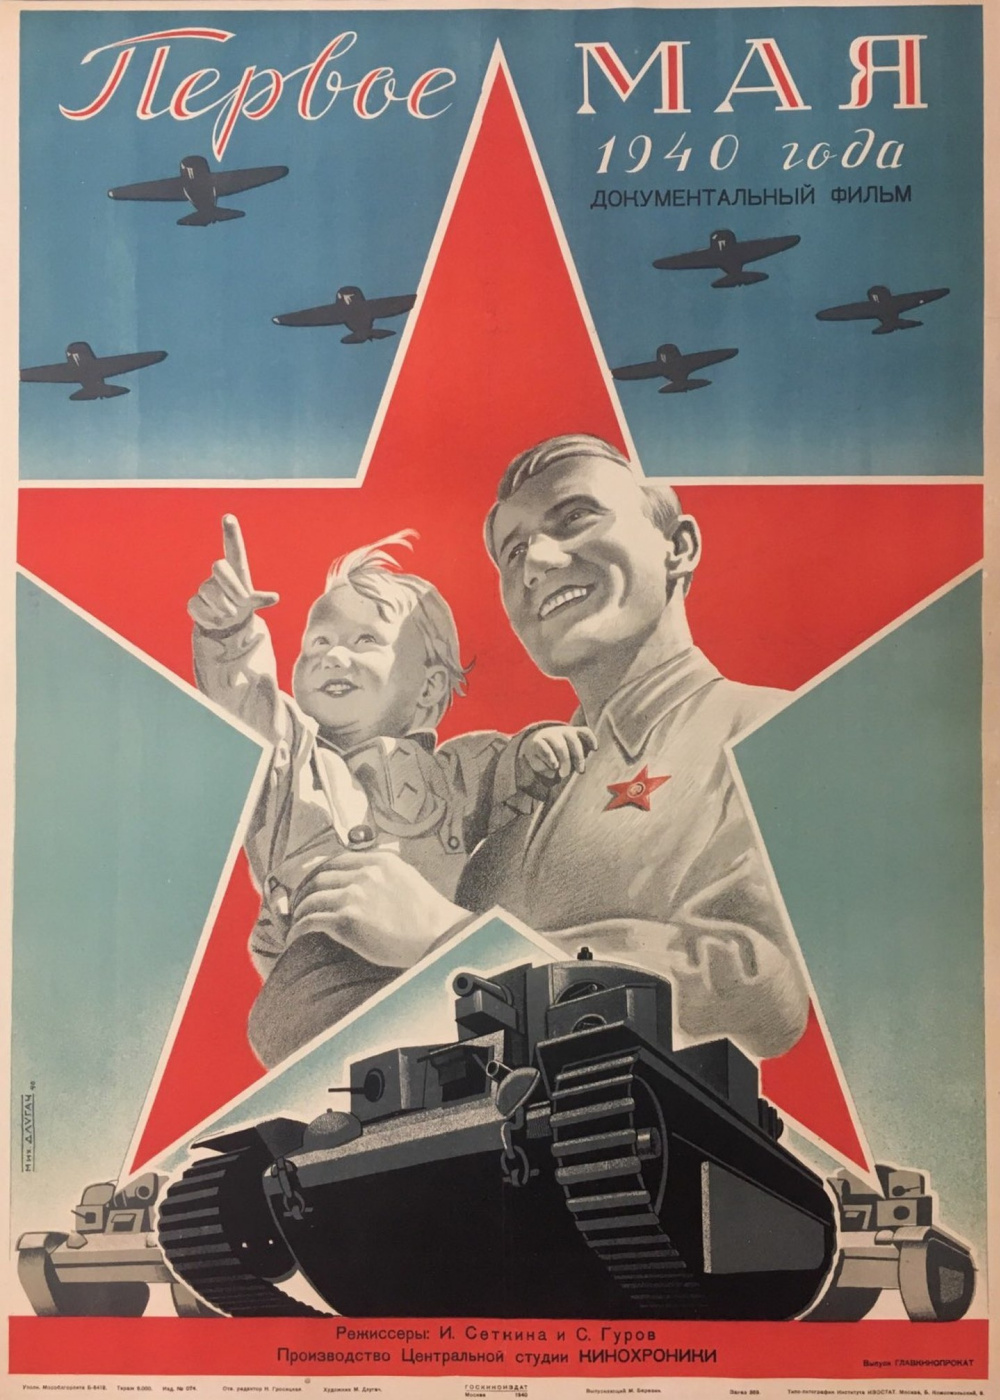 Mikhail Oskarovich Dlugach. The first of may, 1940 : the Documentary